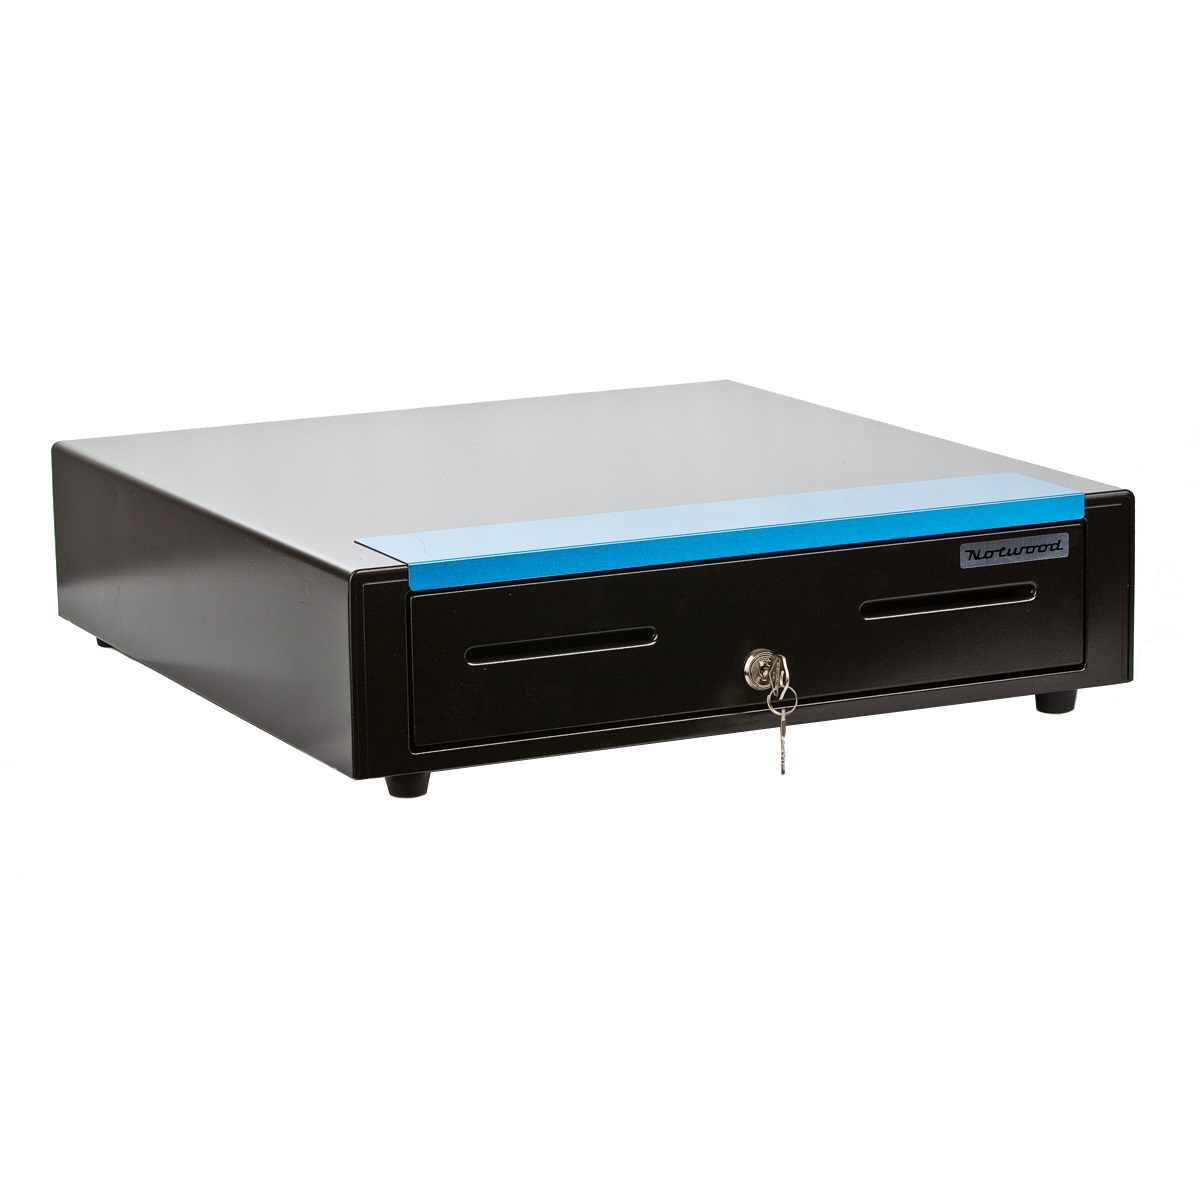 View Norwood 107m3 Cash Drawer